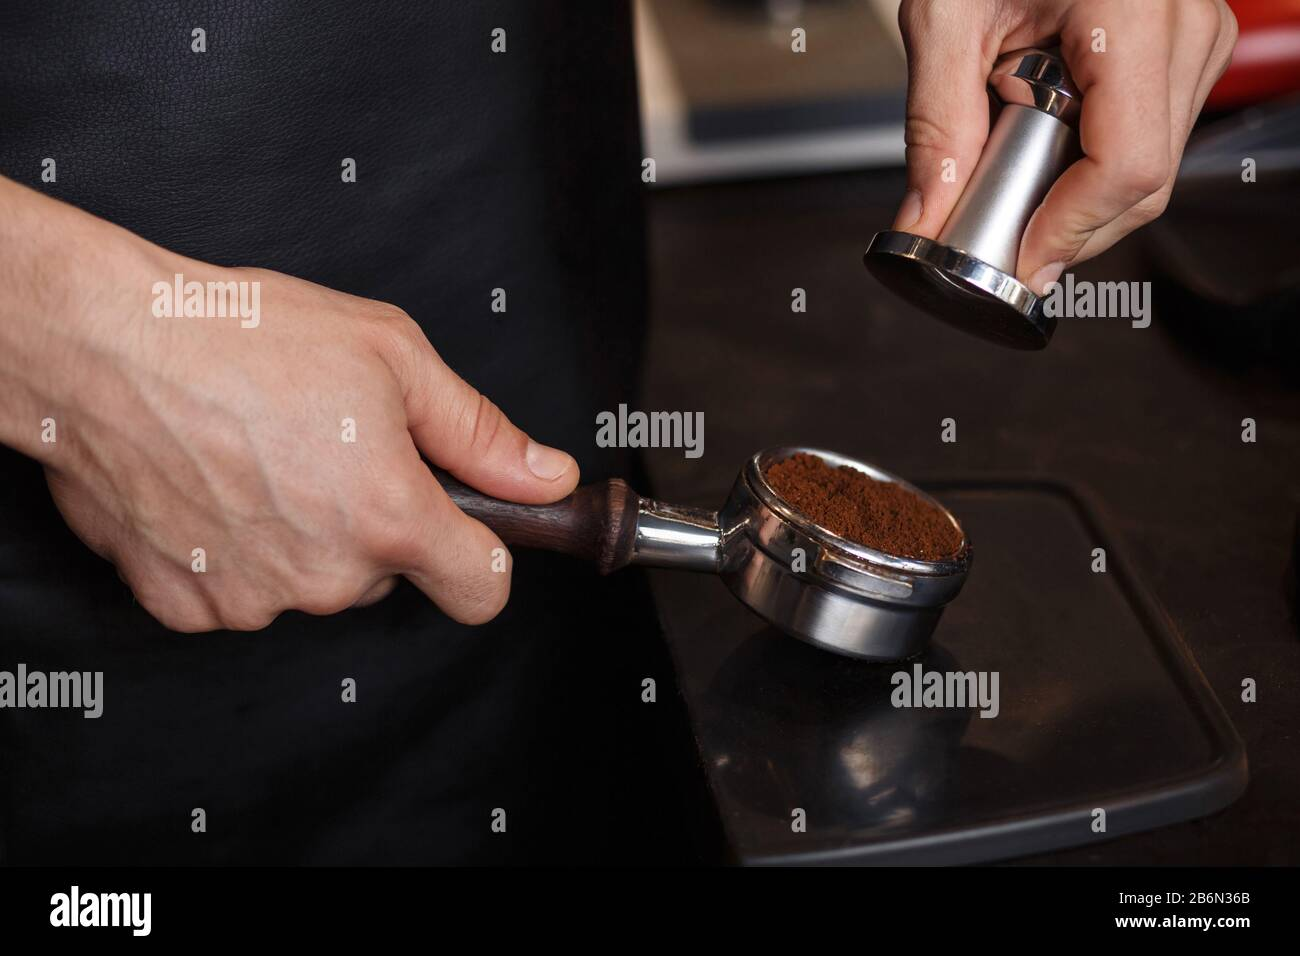 Young male barista pressing ground coffee into bottomless portafilter holder using tamper. Preparing espresso in professional coffee machine. Brewing Stock Photo